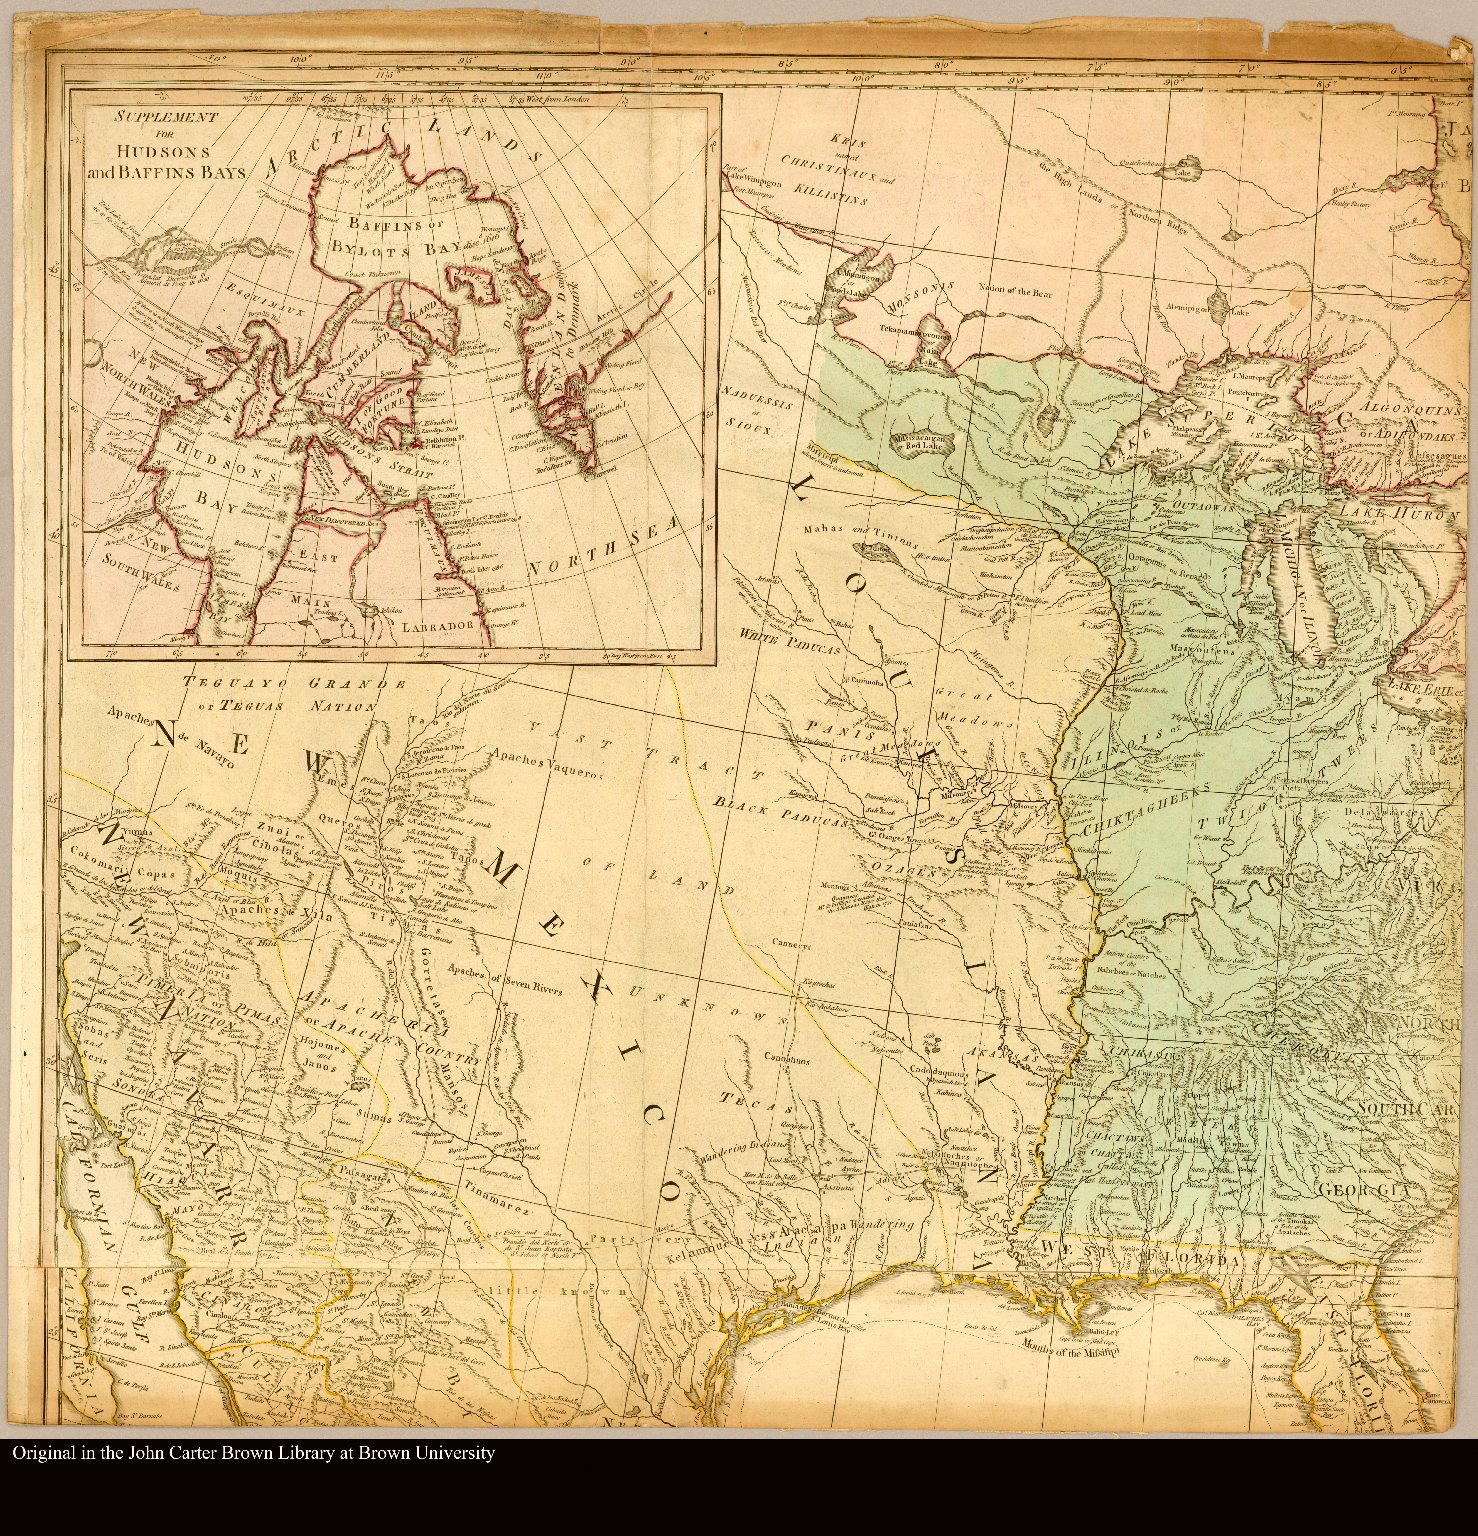 North America Map Mississippi River.Map Of North America Showing The Mississippi River And Great Lakes